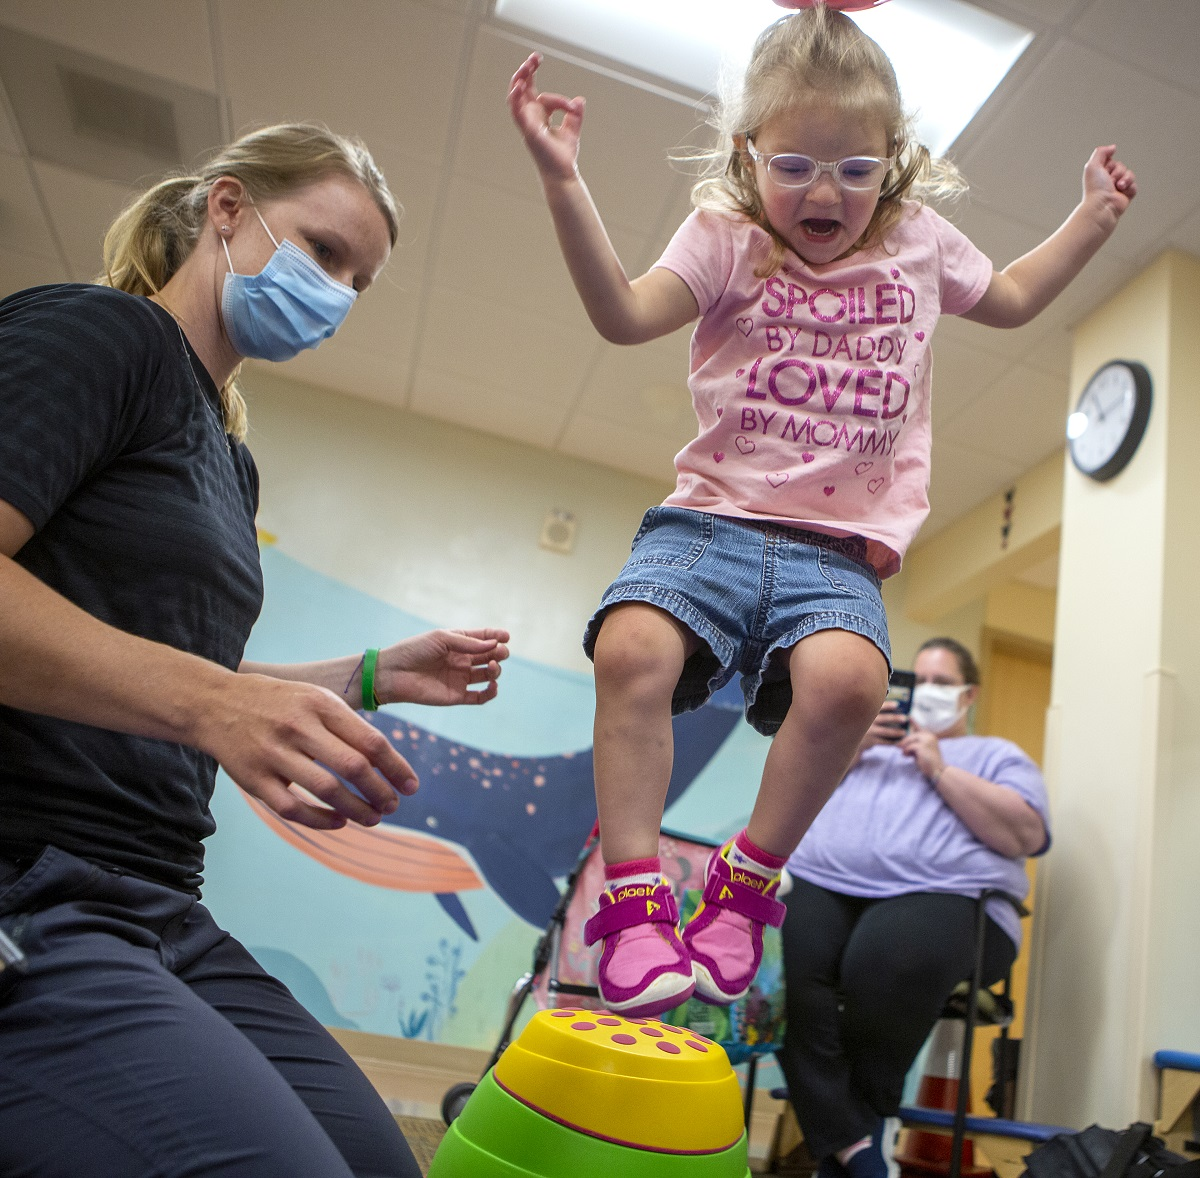 "Joella Migliori jumps over a plastic stepping stone in a physical therapy room. Physical therapist Emily Hoffman, who has her hair in a pony tail and wears a face mask, kneels beside her. Joella, who wears glasses and has short hair pulled back in a barrette, wears a T-shirt that says ""Spoiled by Daddy, loved by Mommy"" with shorts and sneakers. Janette Migliori, Joella's mother, sits in a chair in the background and holds up to phone to take a picture."